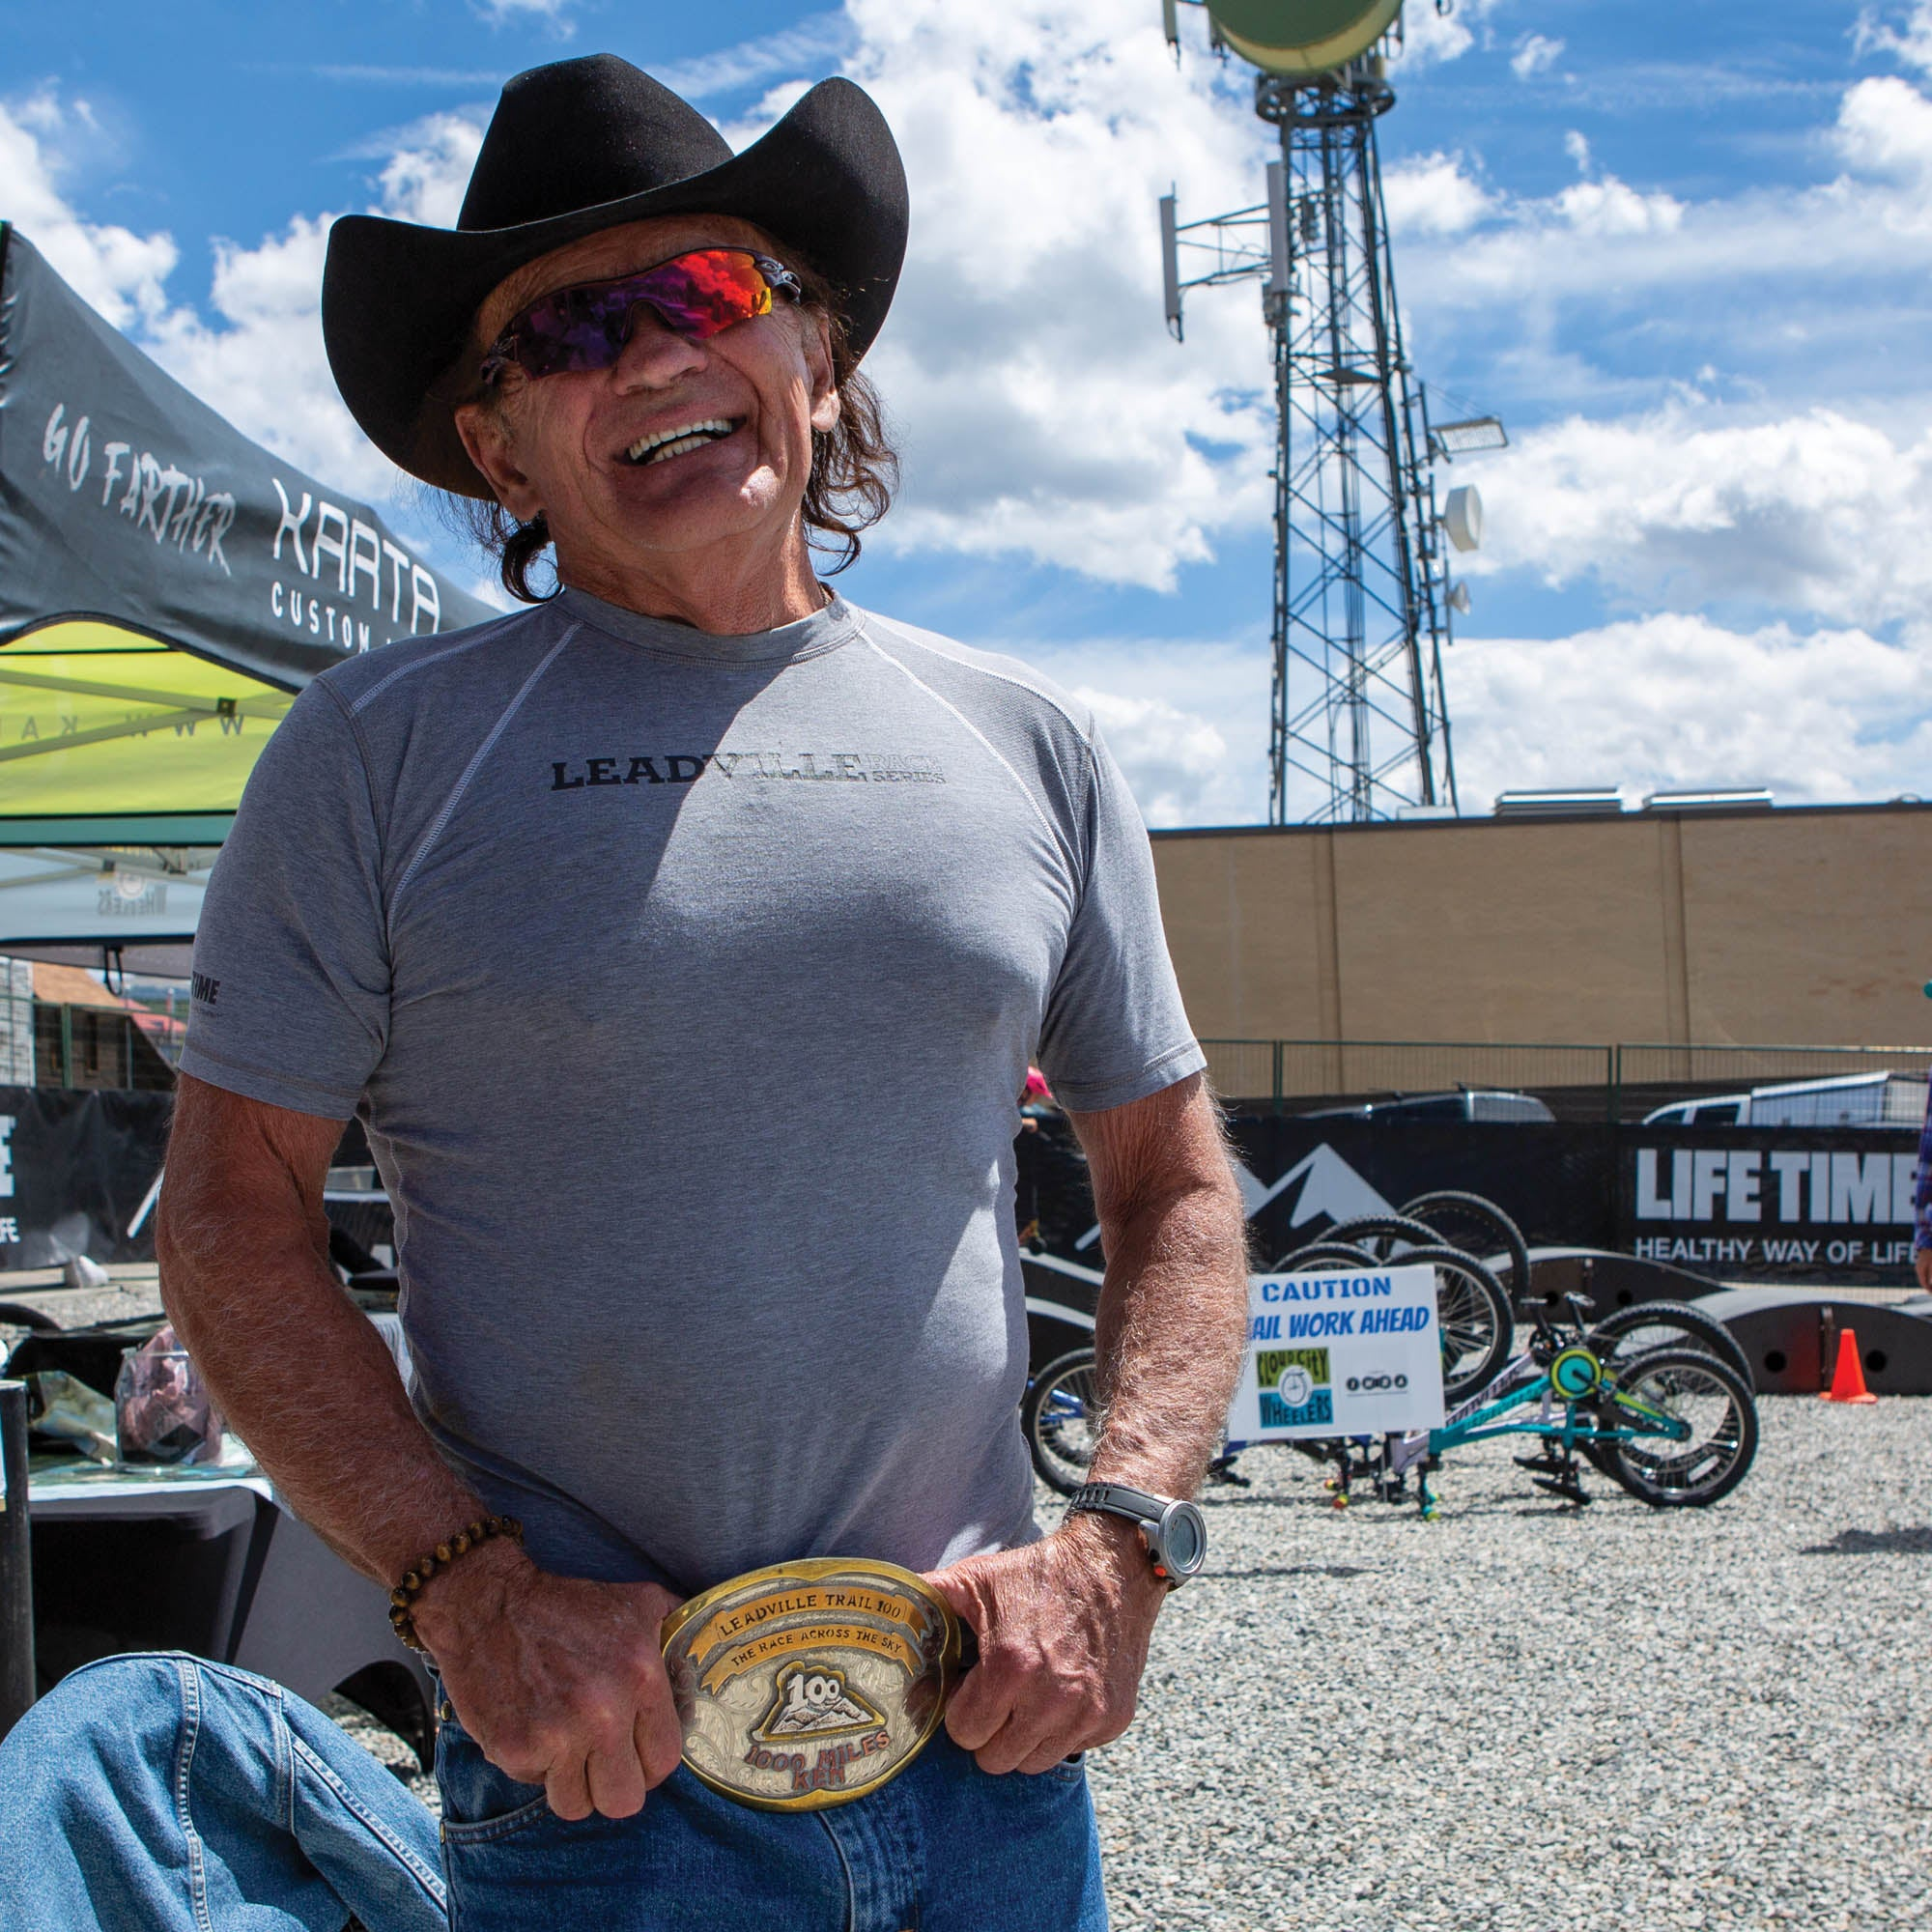 Chlouber smiling in a t-shirt, cowboy hat, and massive gold belt buckle